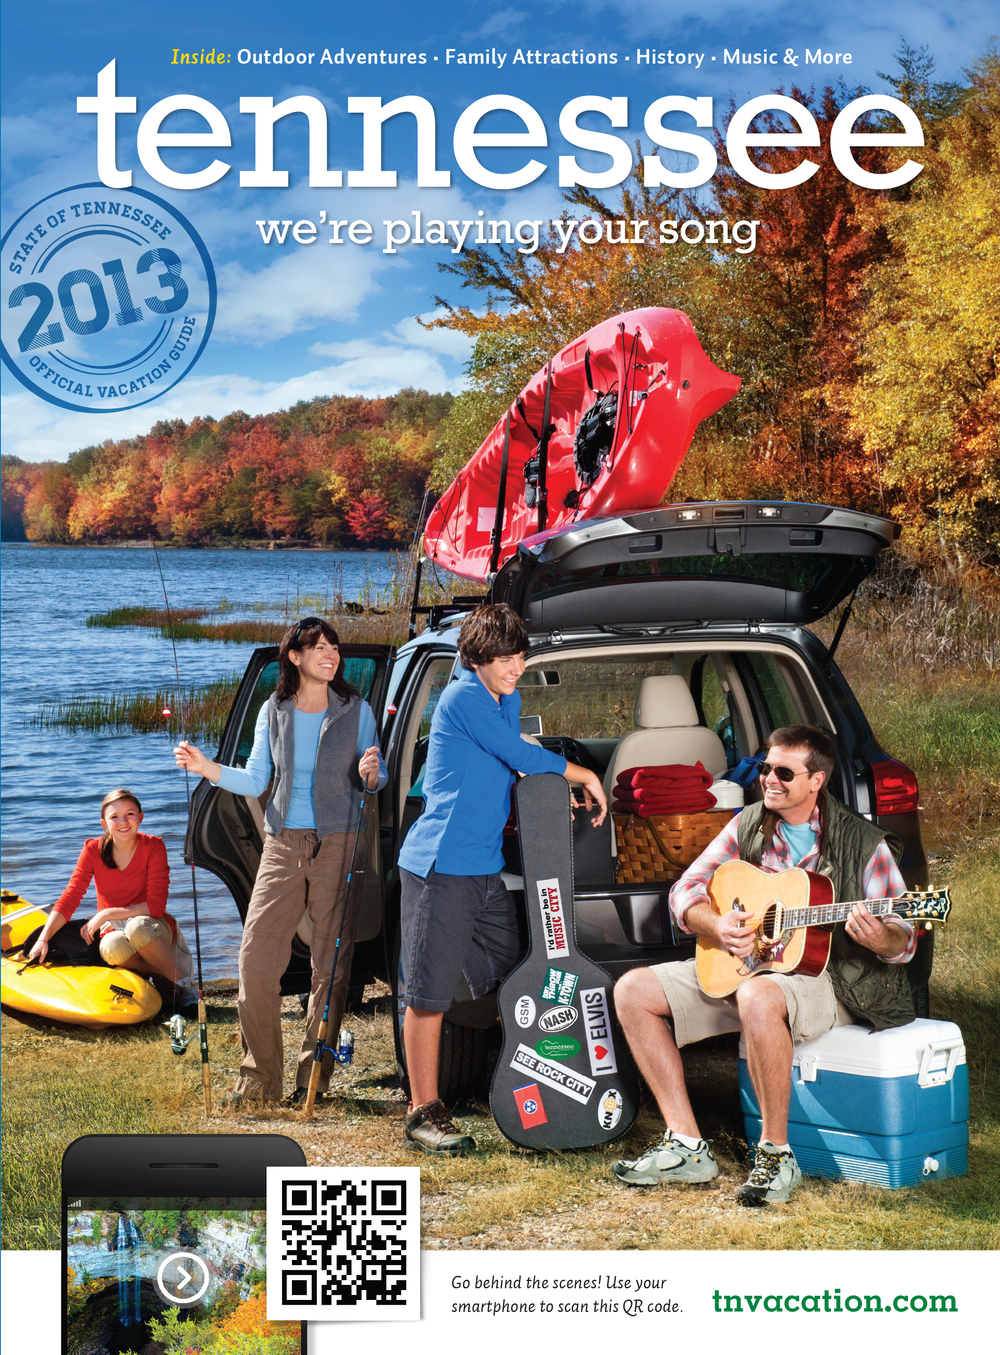 The finished Vacation Guide cover for 2013. Shot at Fall Creek Falls State Park in middle Tennessee.